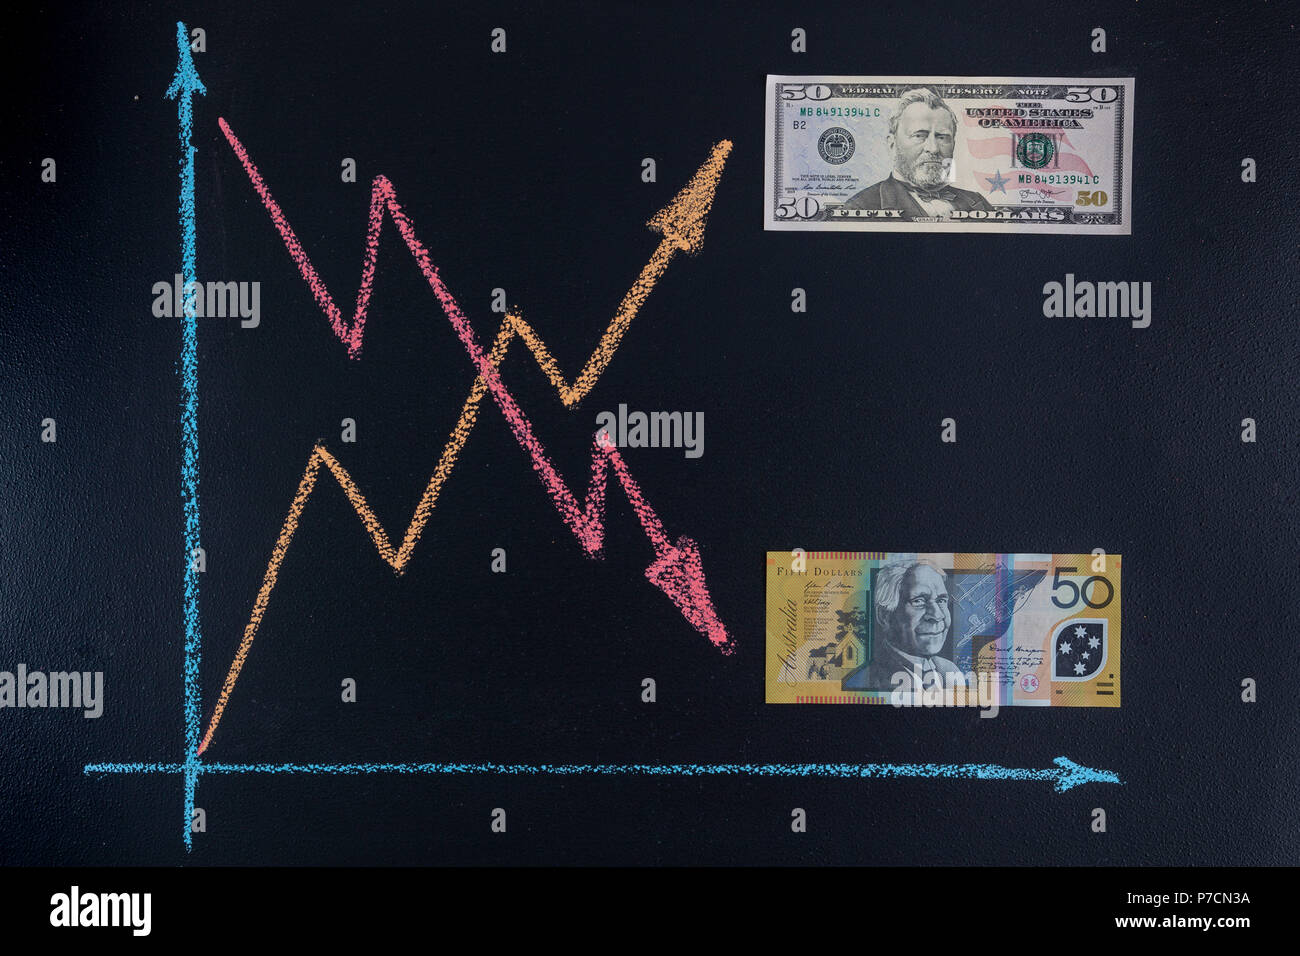 Forex currency trends concept - USD going up while AUD going down. Depicted with chalkboard line graphs and paper currency. - Stock Image